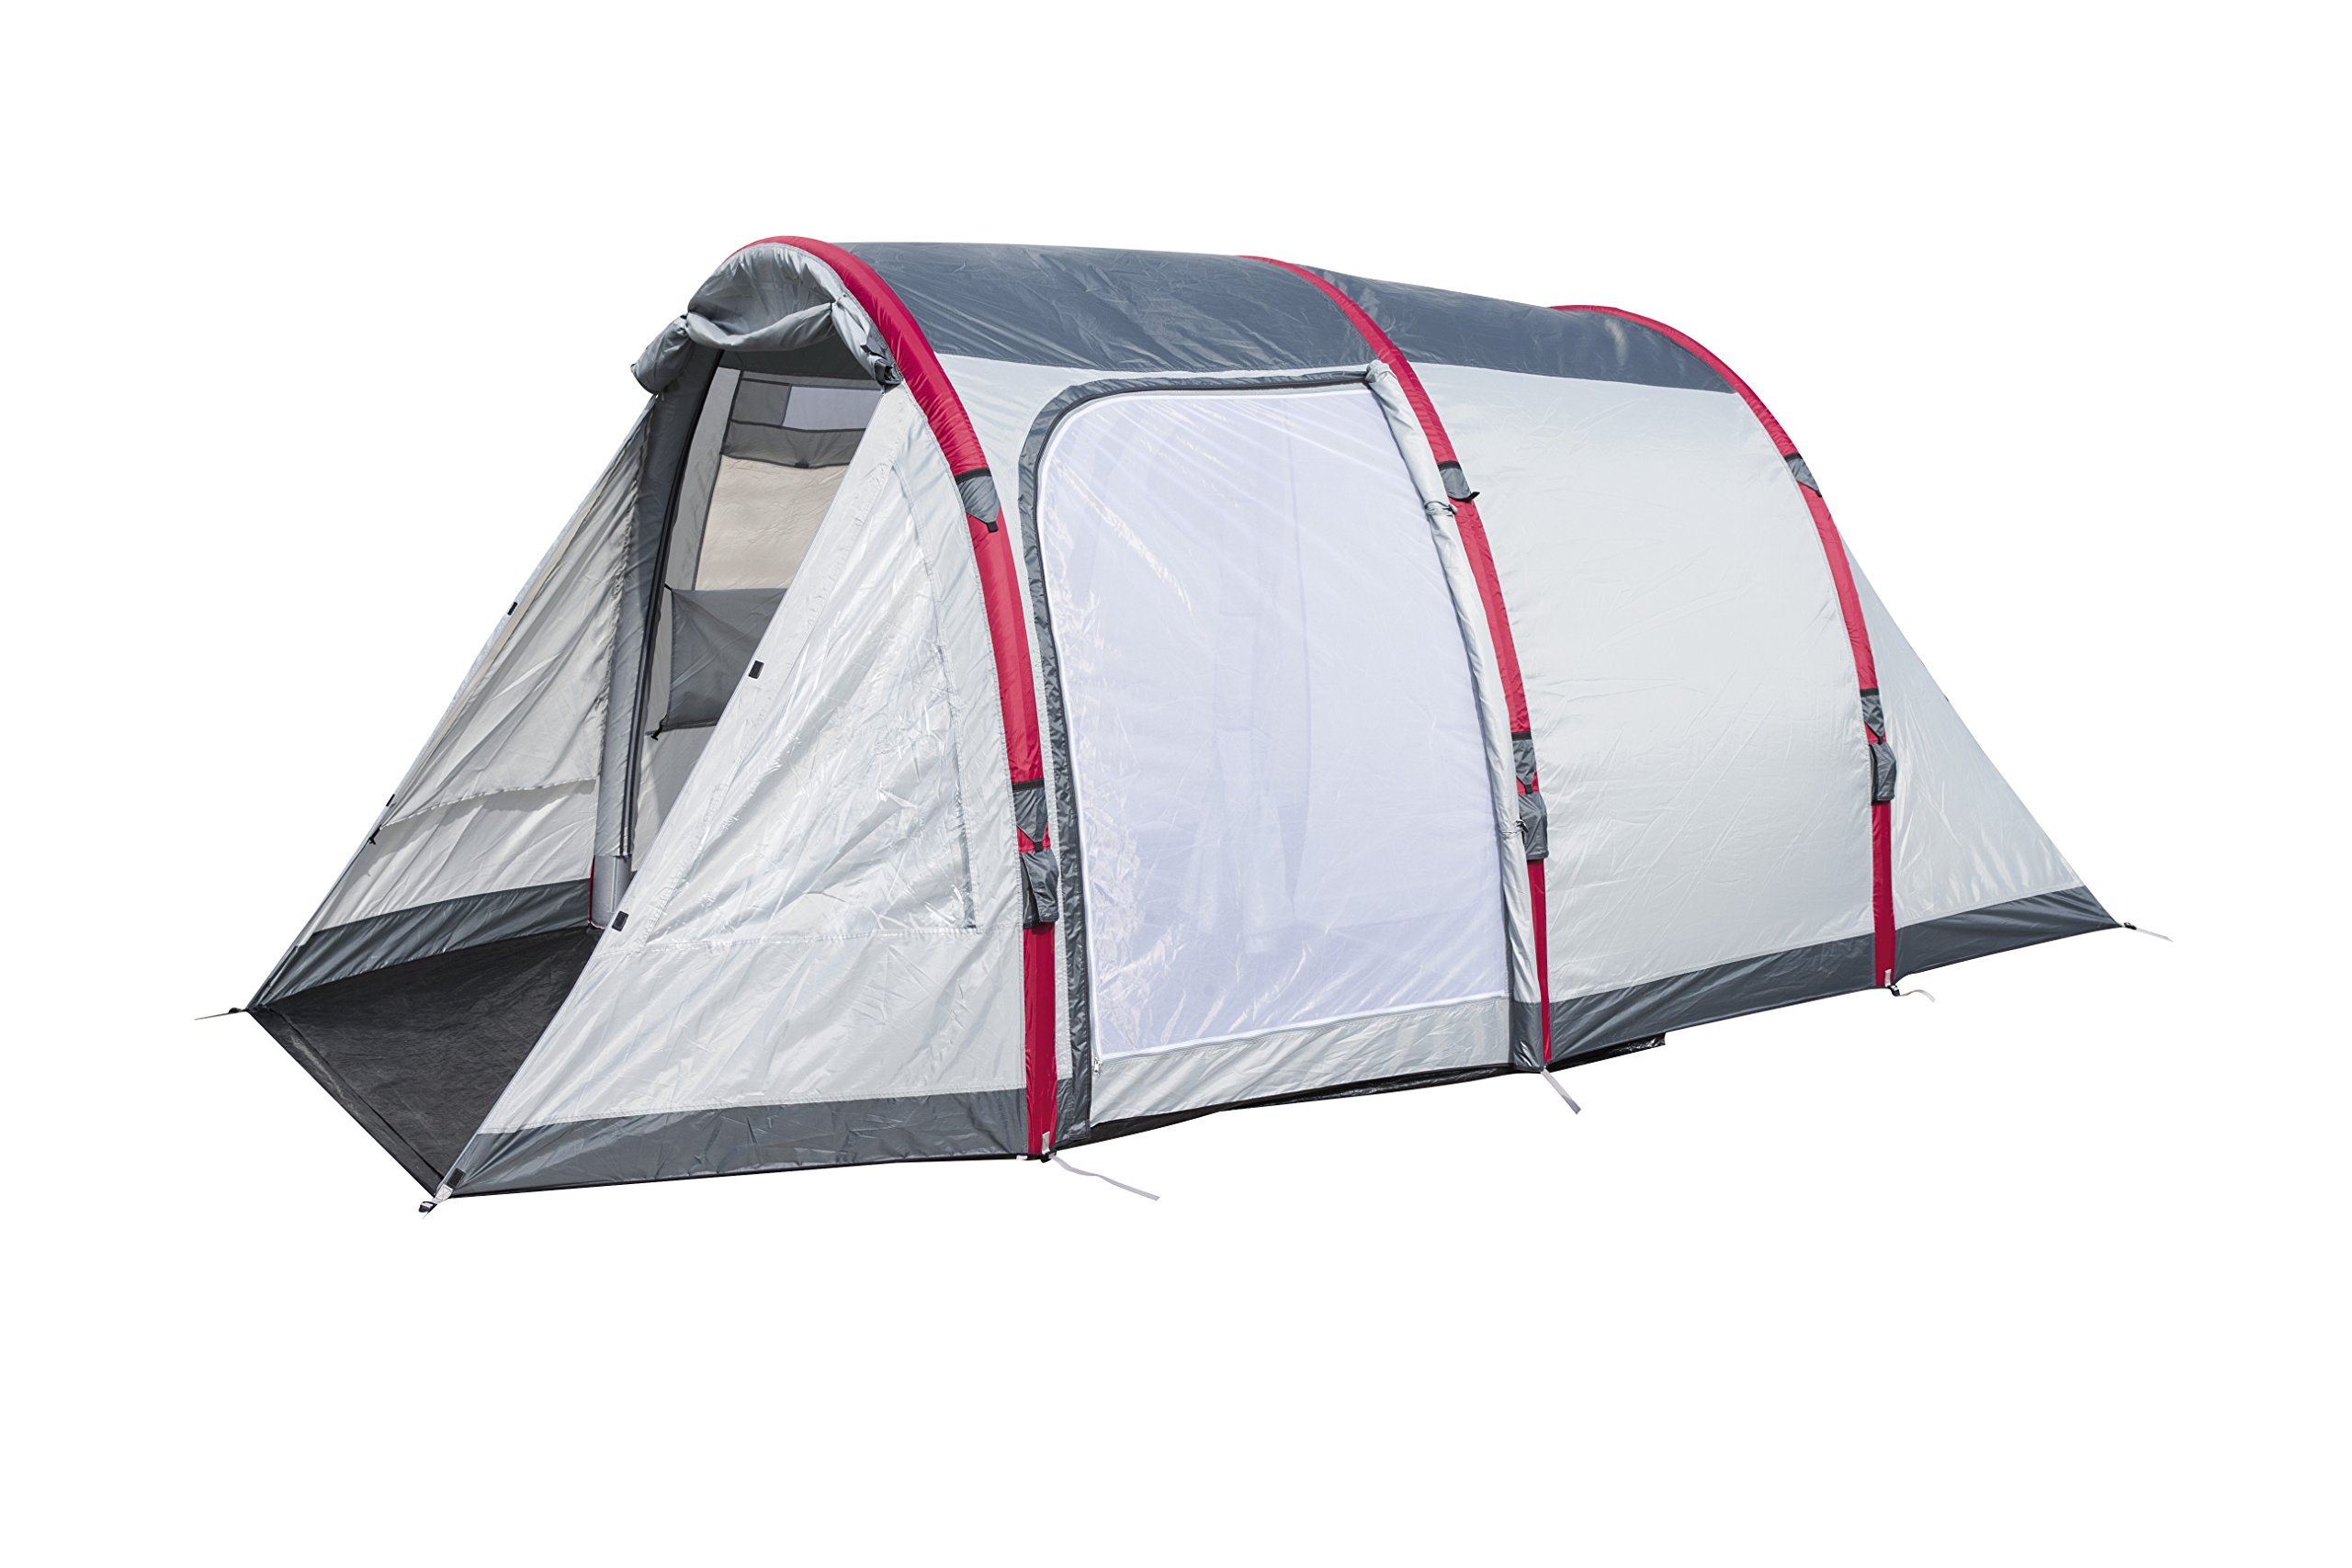 Pavillo Unisex's BW68077 Sierra Ridge Air Inflatable 4-Man Tunnel Tent Measures L4.85m x 2.79m x H2m, Grey, 4 Person 1